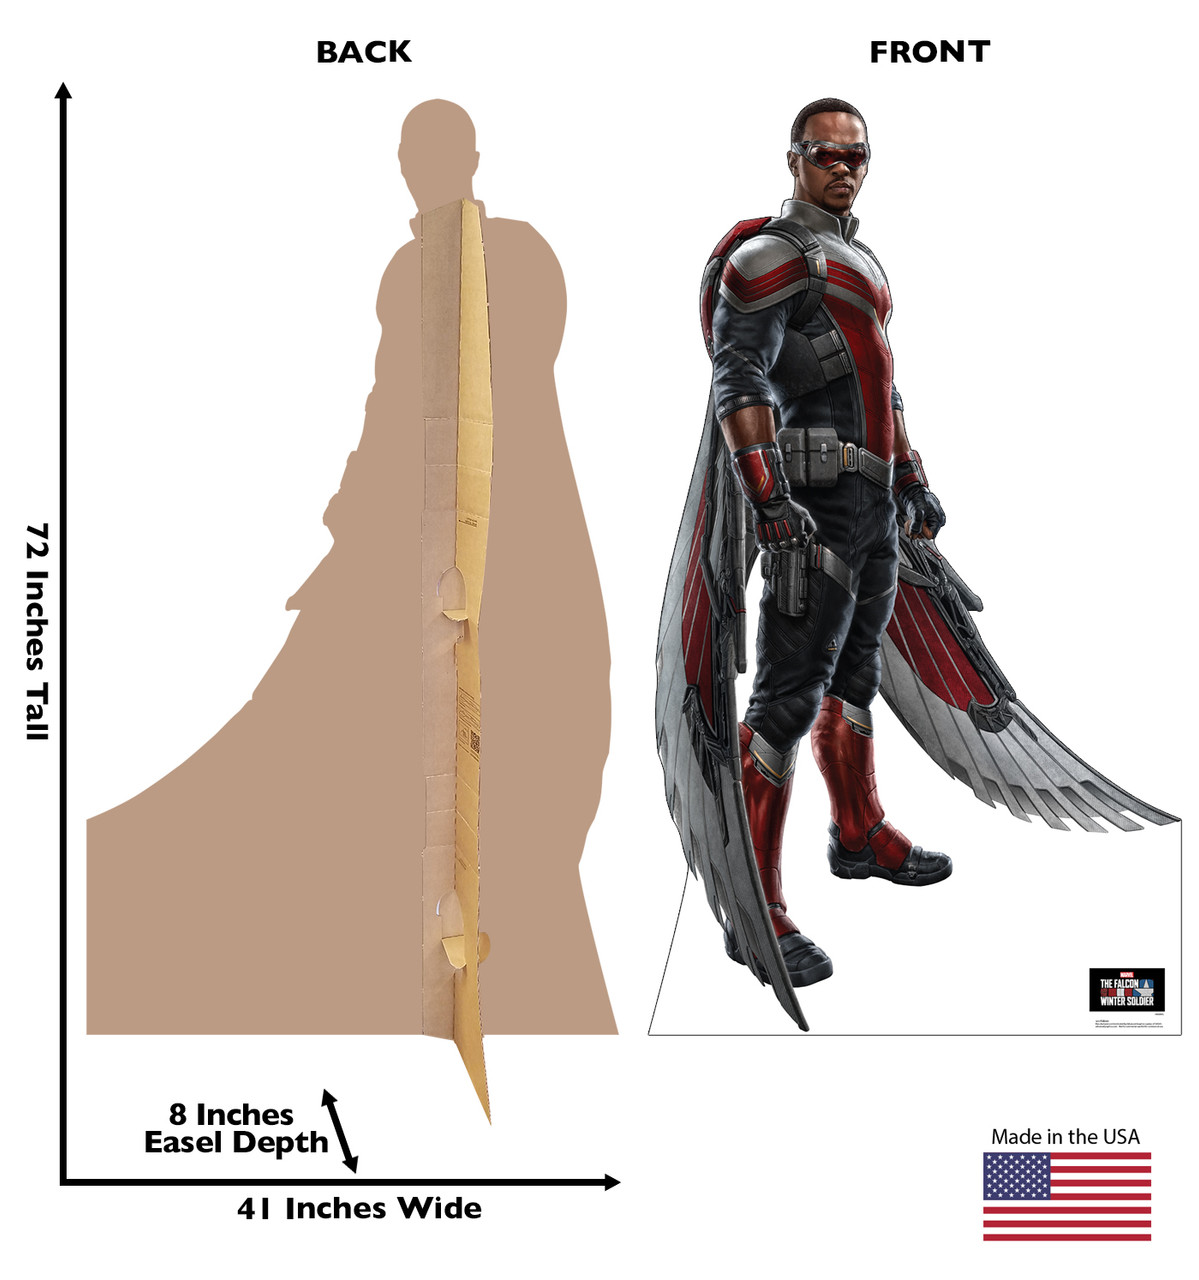 Life-size cardboard standee of Falcon with front and back dimensions.